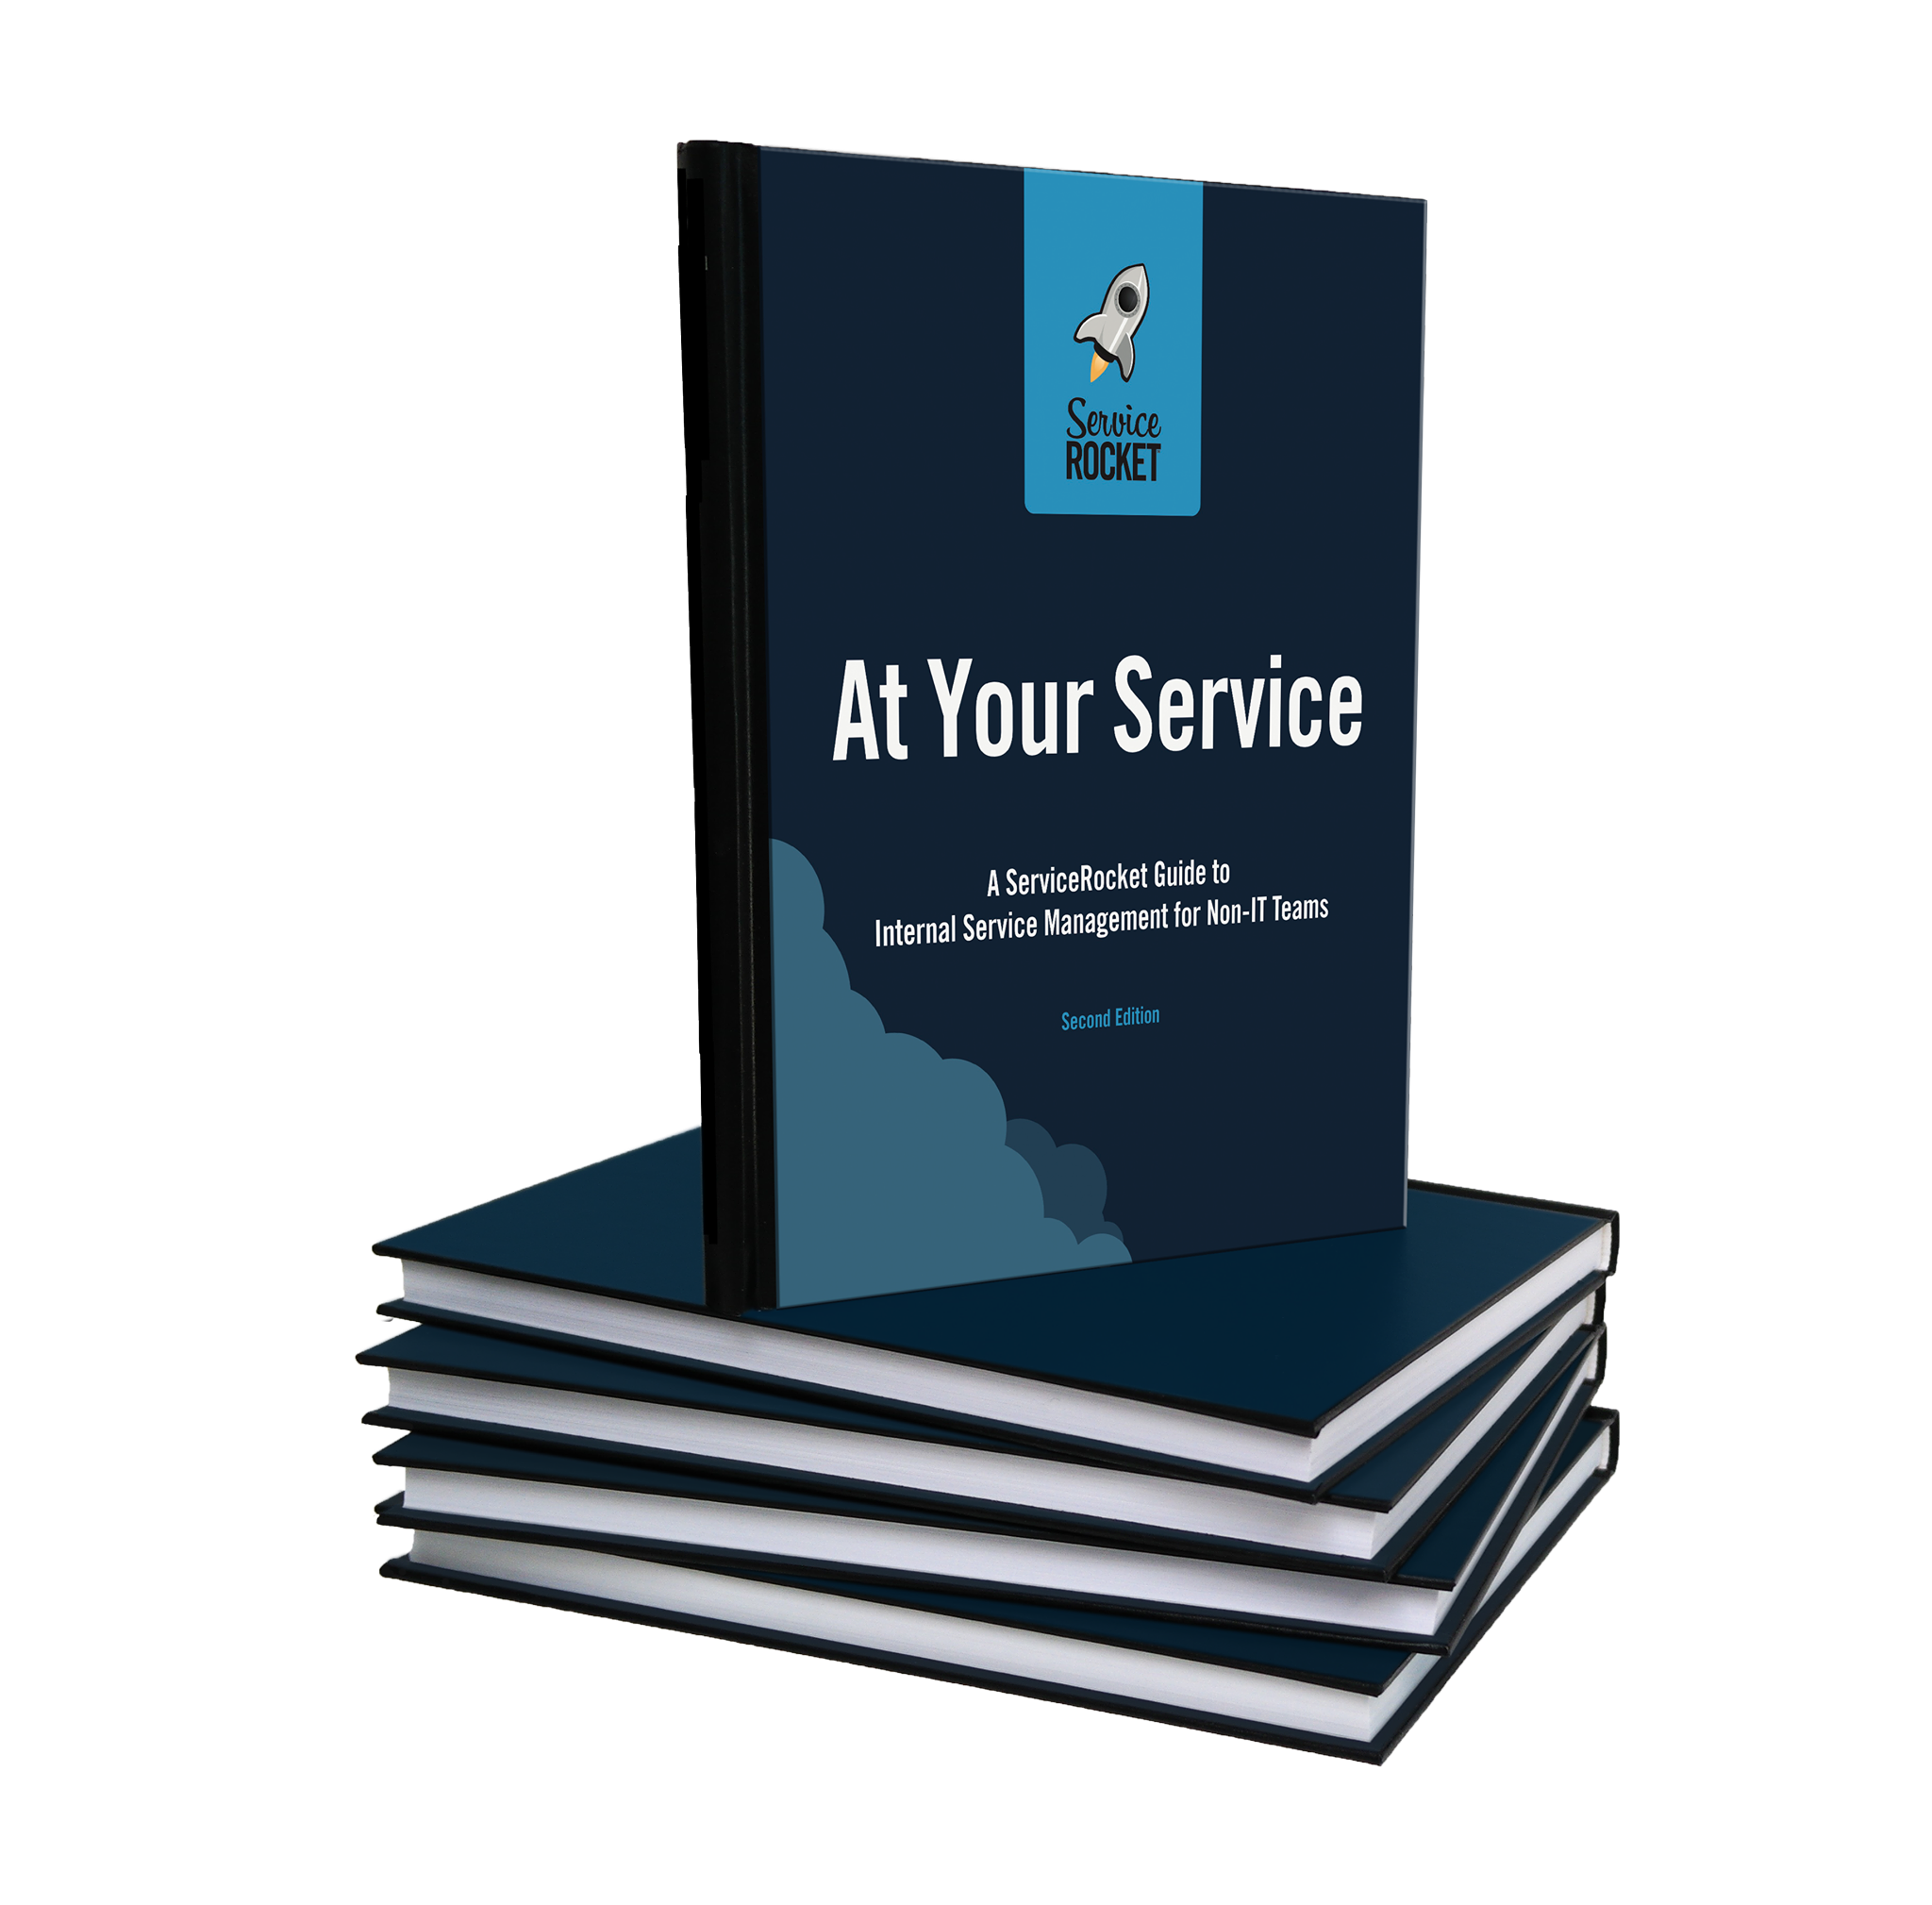 The ServiceRocket Guide to Service Management for Non-IT Teams with JIRA Service Desk